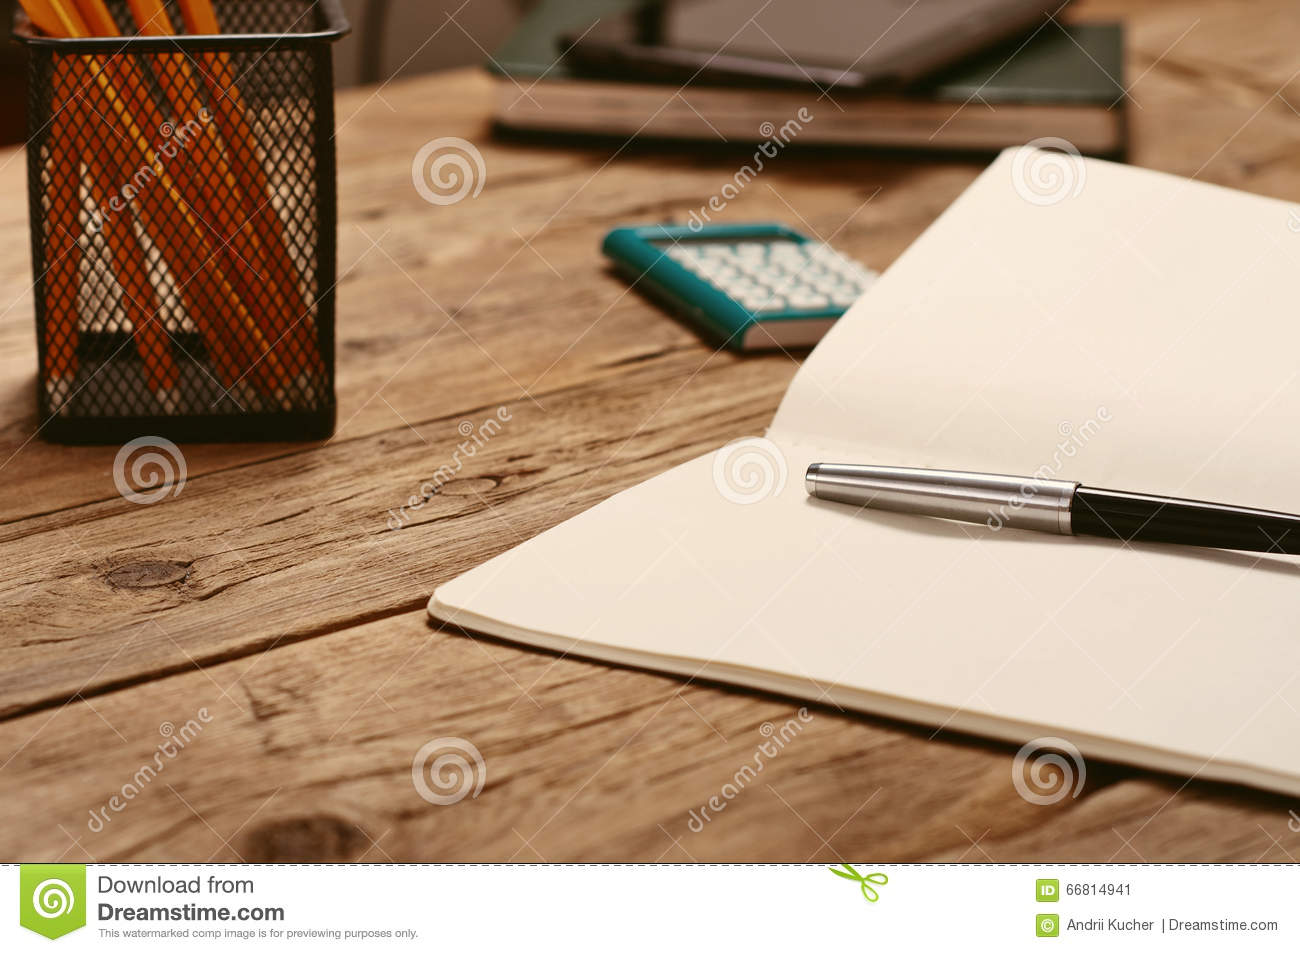 On the desktop, open notepad with pen and calculator